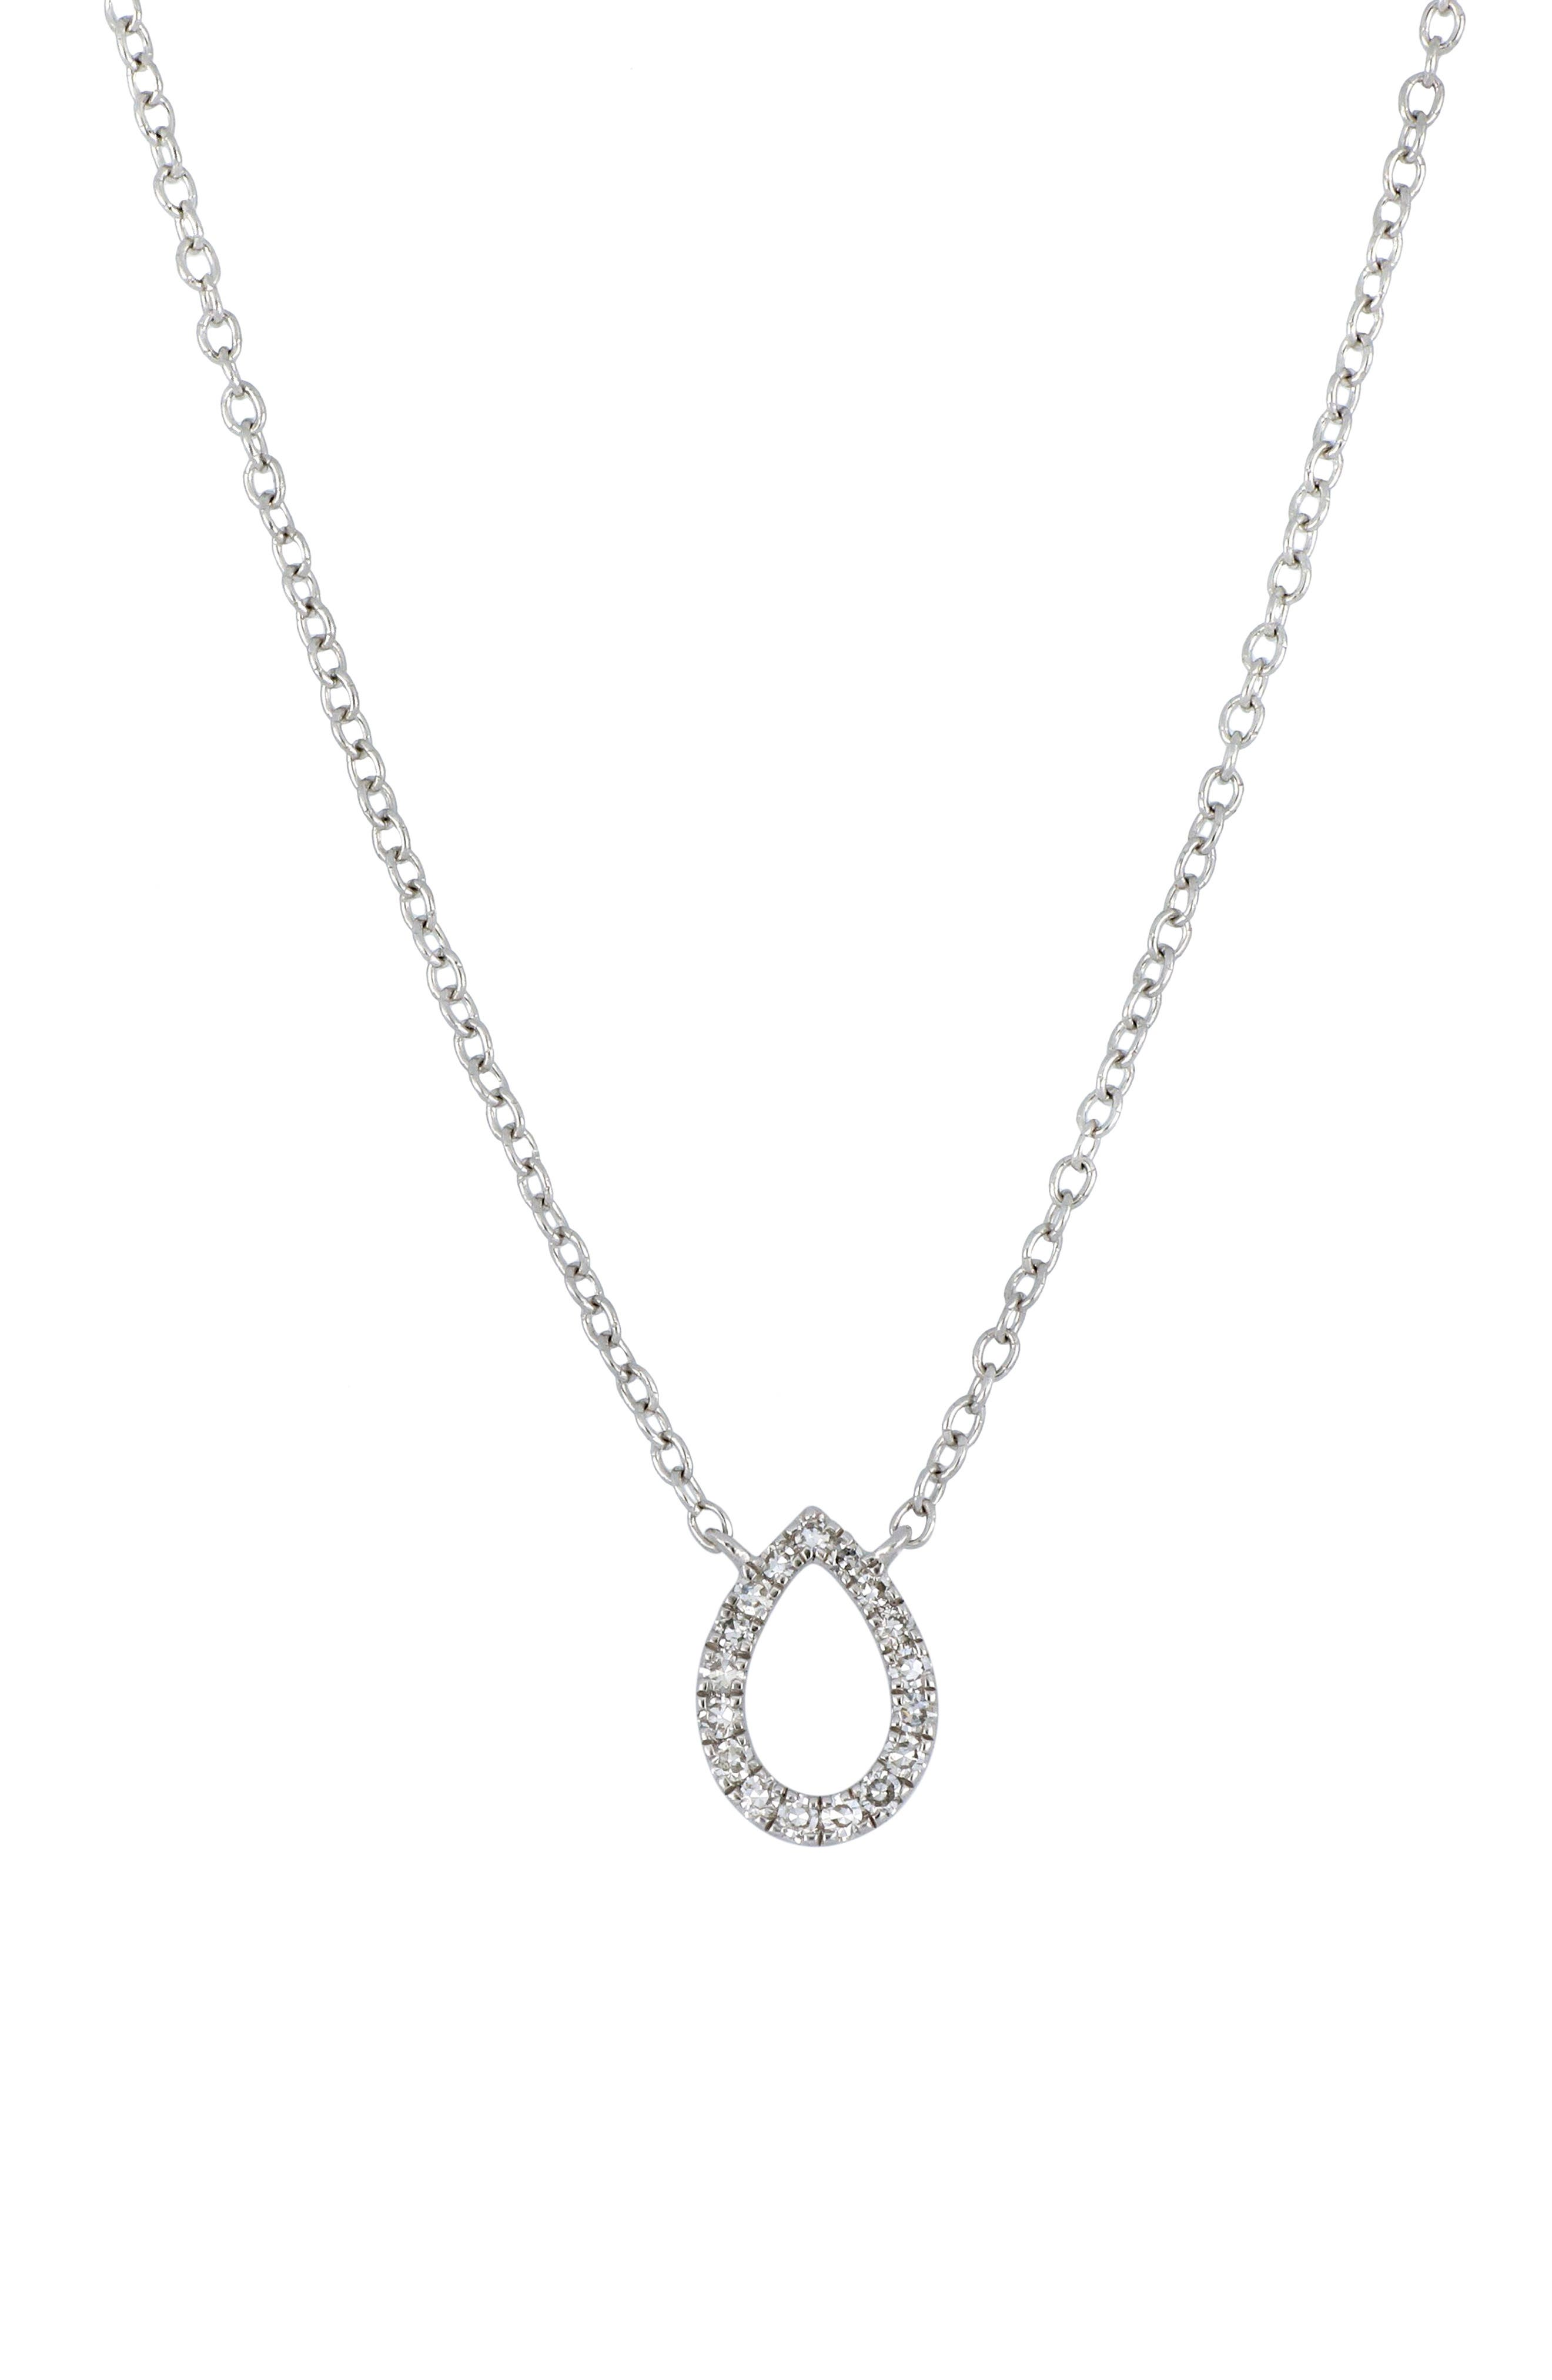 Image of Carriere Sterling Silver Pave Diamond Open Pear Pendant Necklace - 0.06 ctw